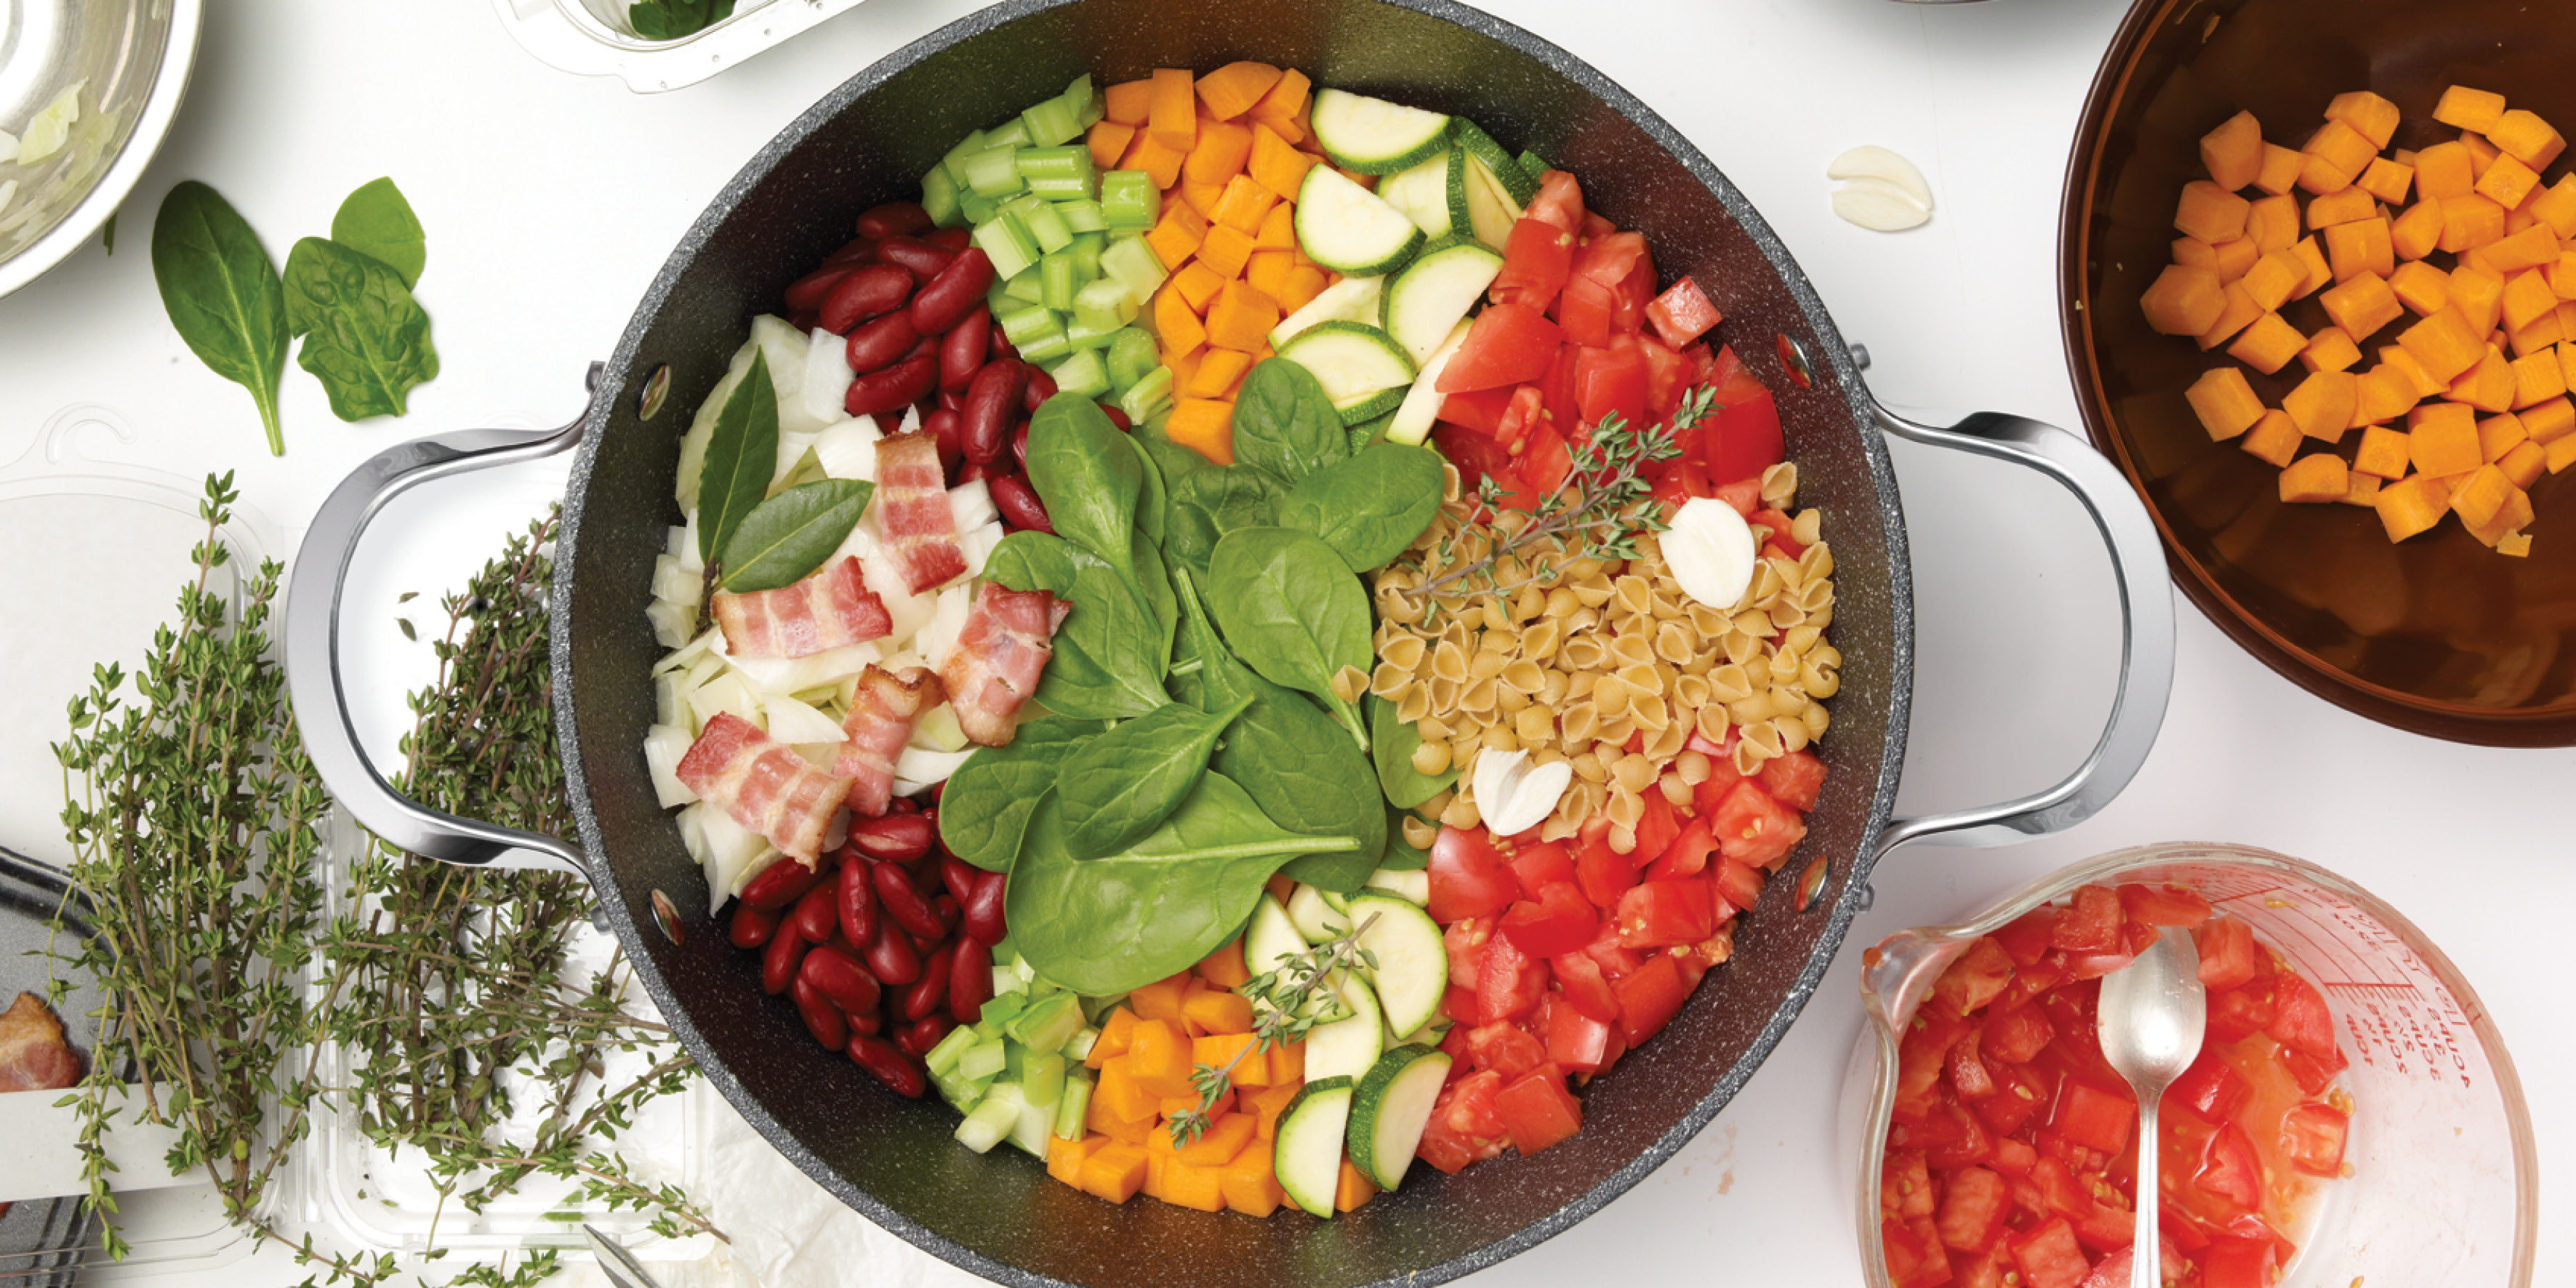 Why It Matters: One-Pot Meals